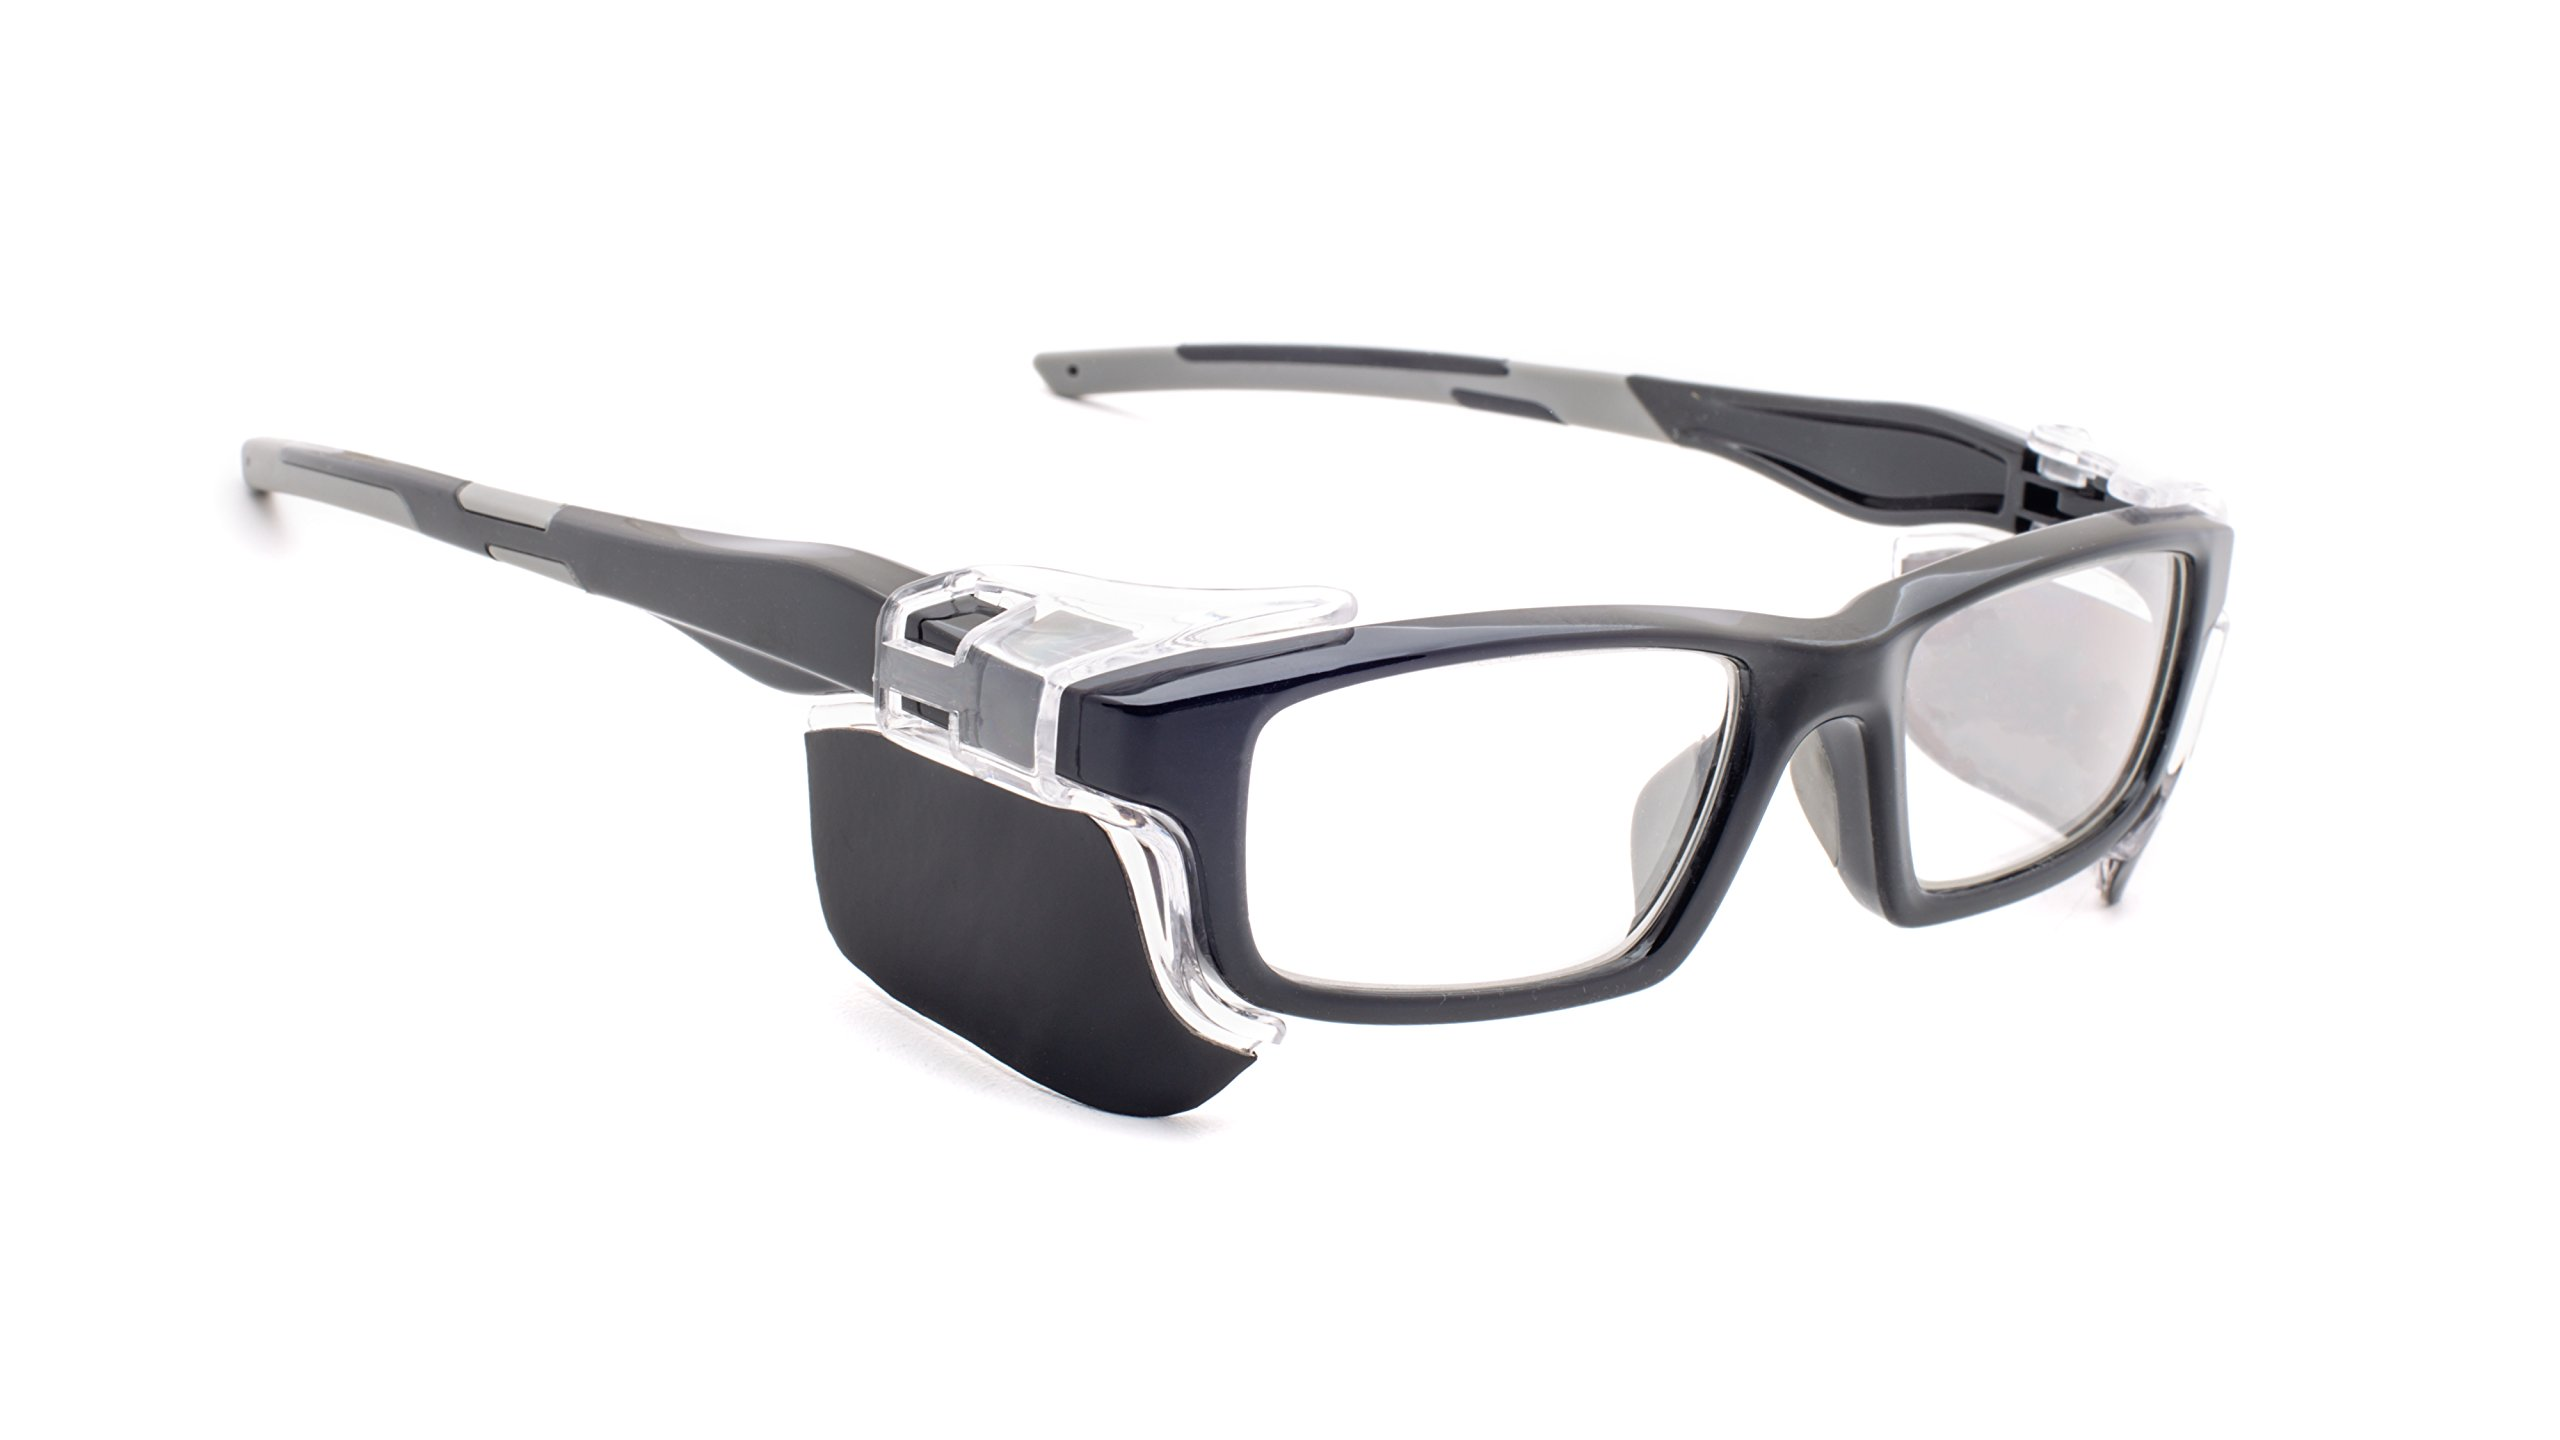 Leaded Glasses Radiation Protective Eyewear RG-17012-BK by Phillips Safety Products, Inc.